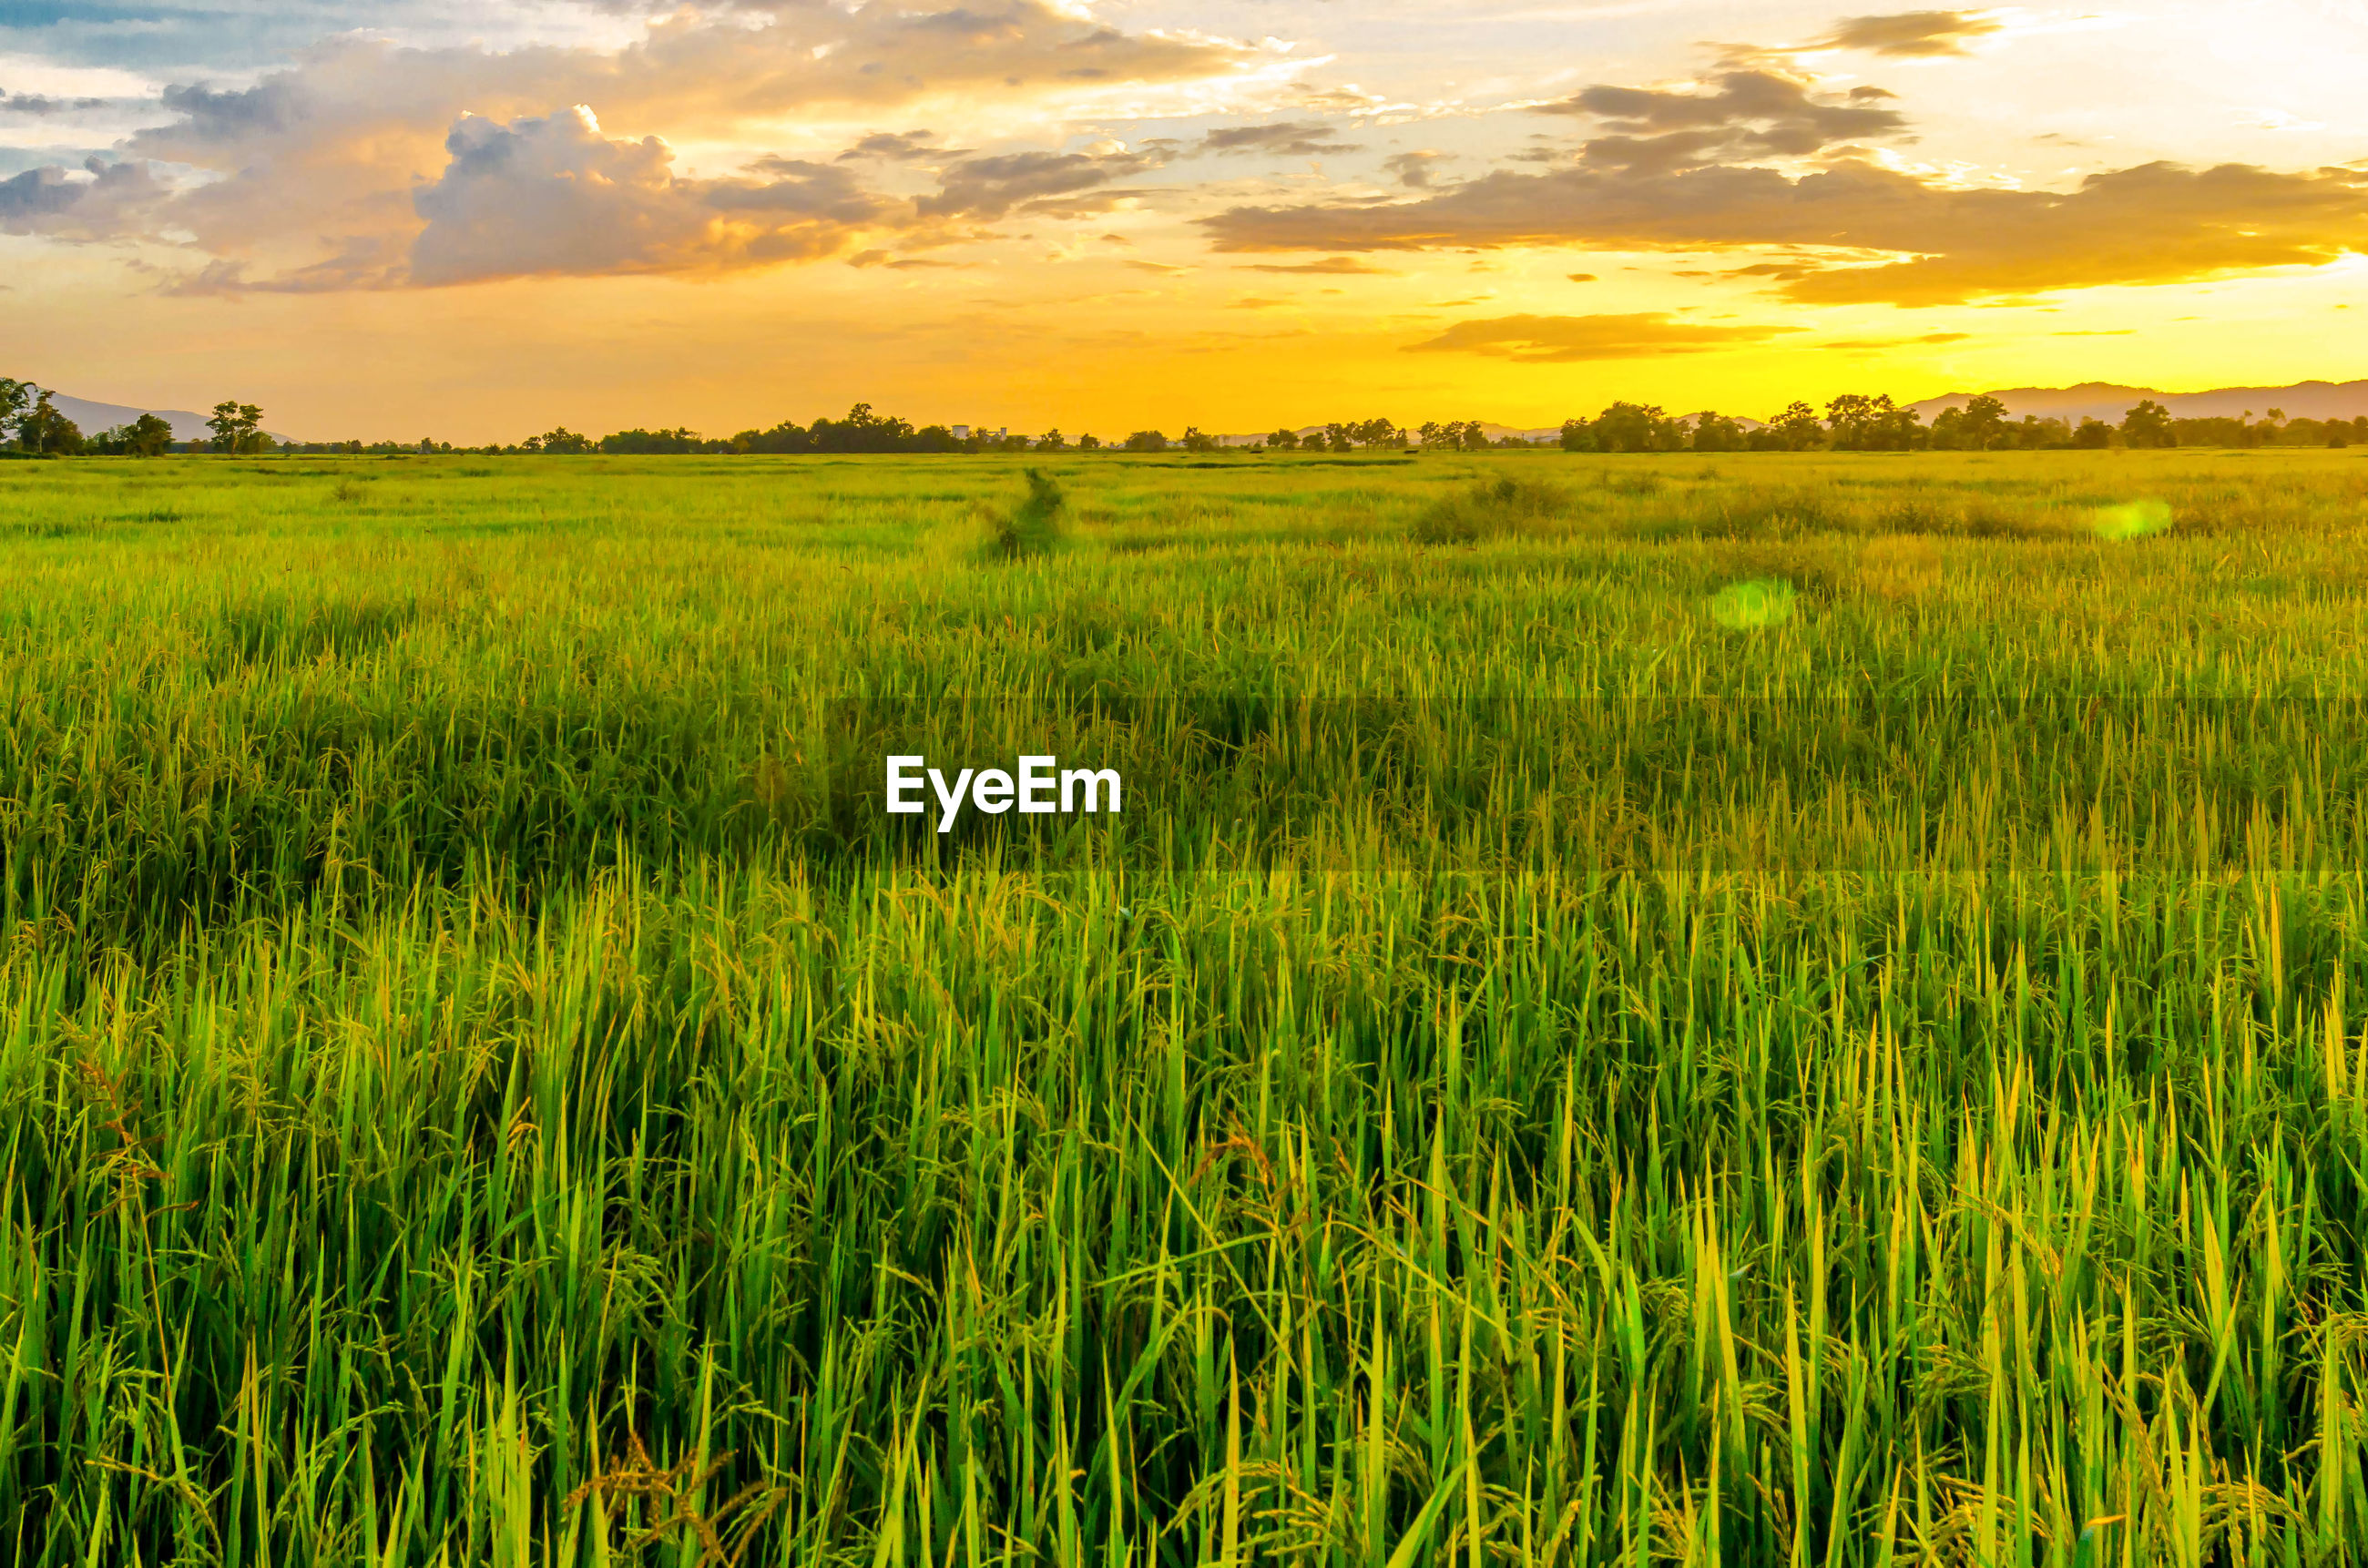 Scenic view of rice field against sky during sunset